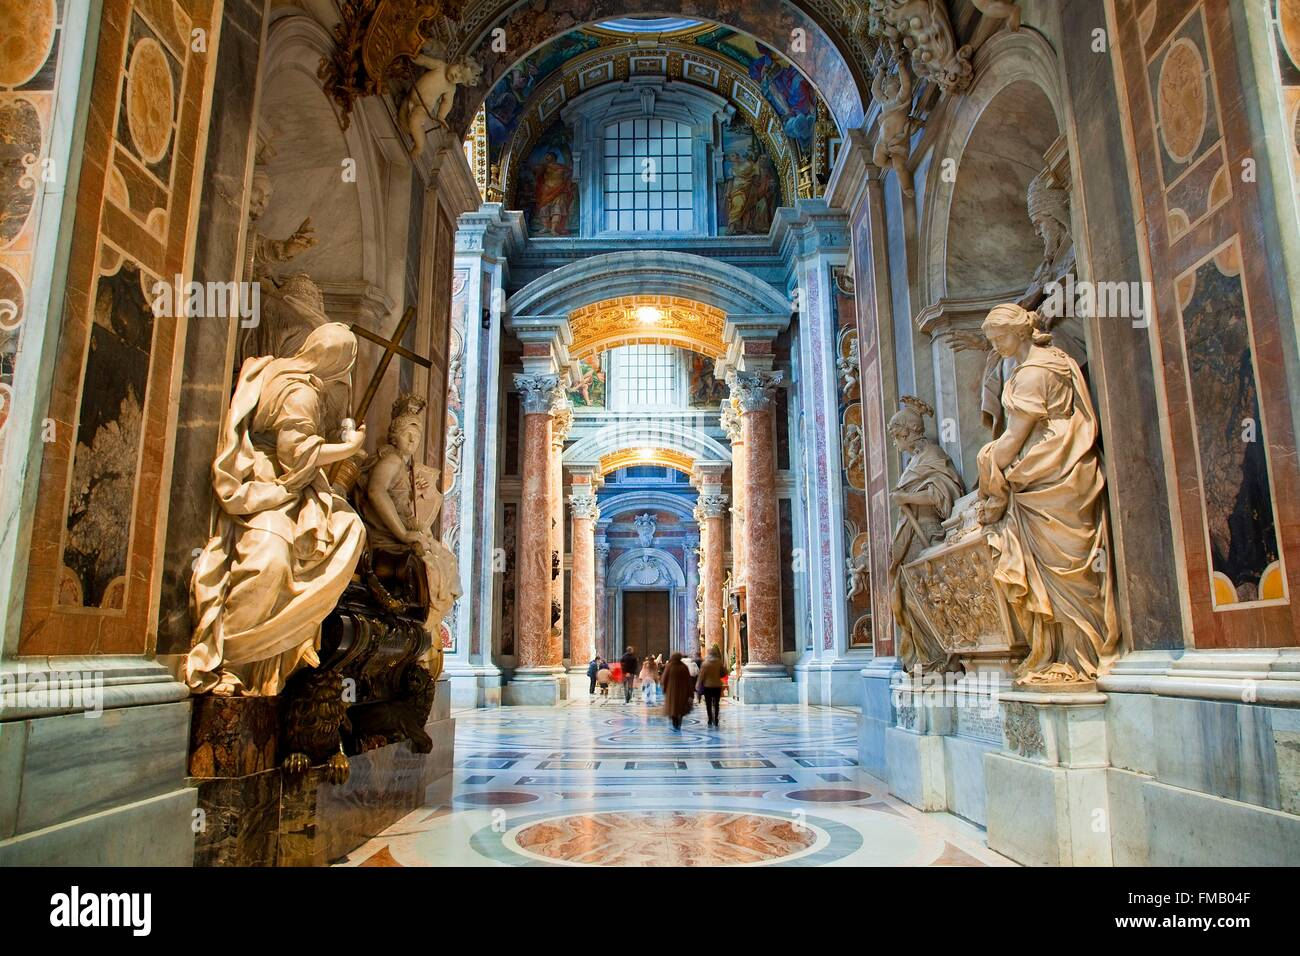 Italy, Lazio, Rome, historical center listed as World Heritage by UNESCO, Vatican City listed as World Heritage - Stock Image